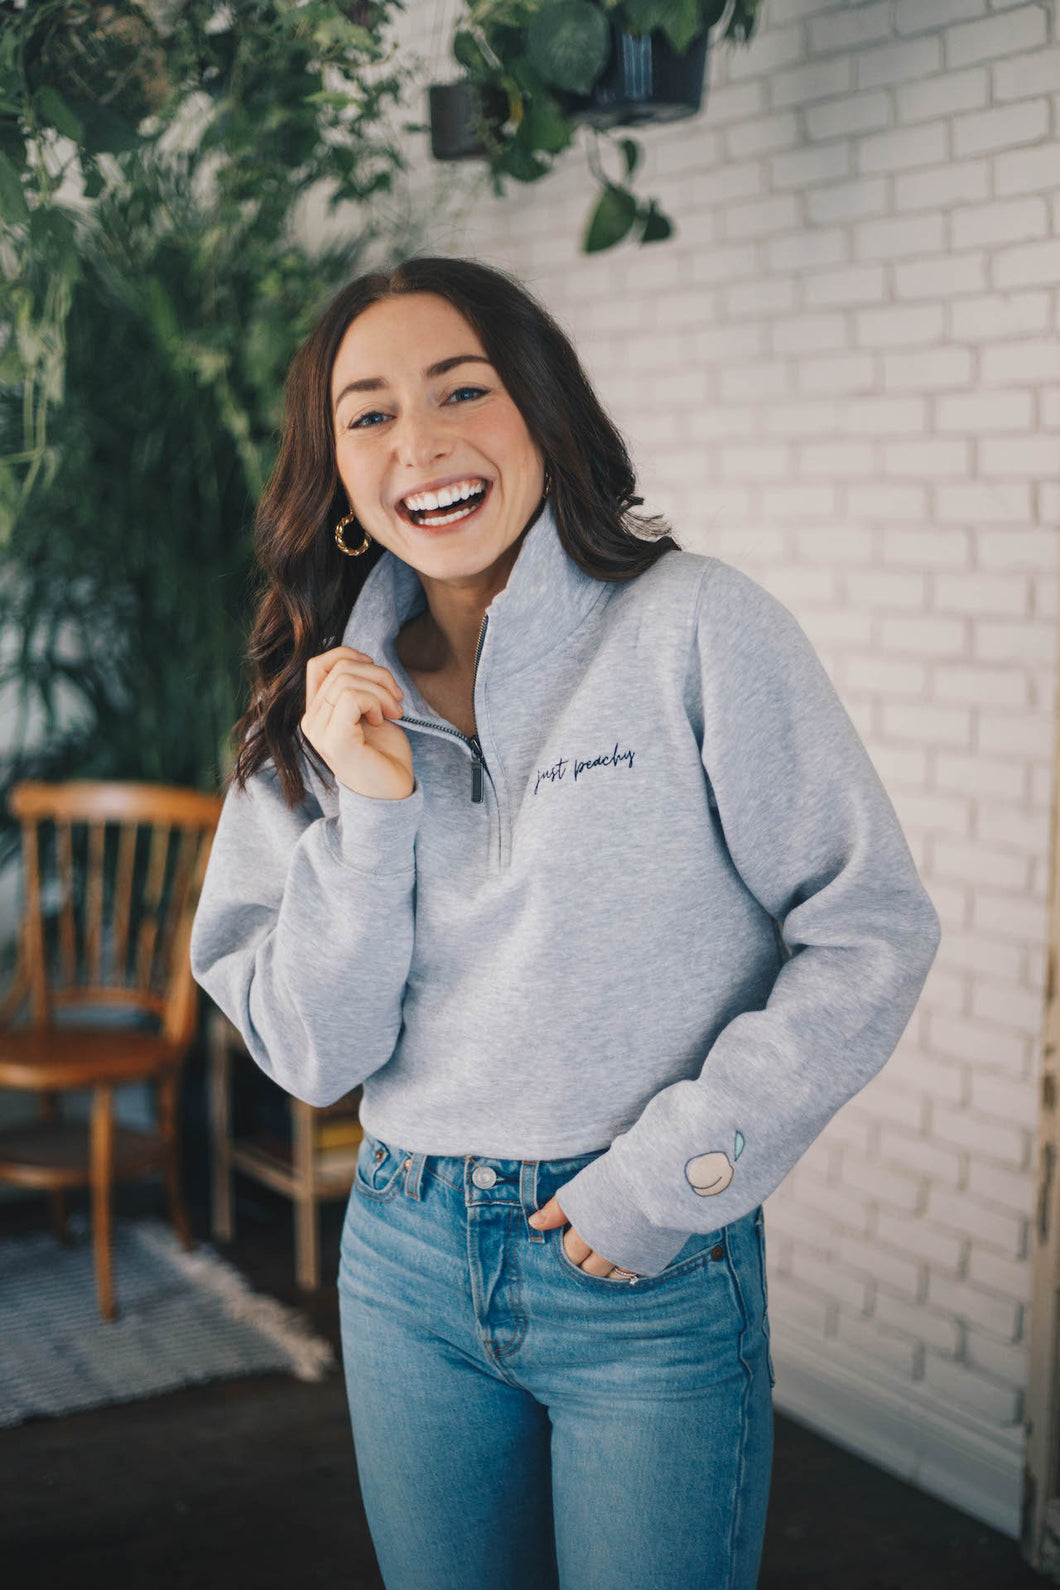 JUST PEACHY 1/4 Zip Cropped Sweater